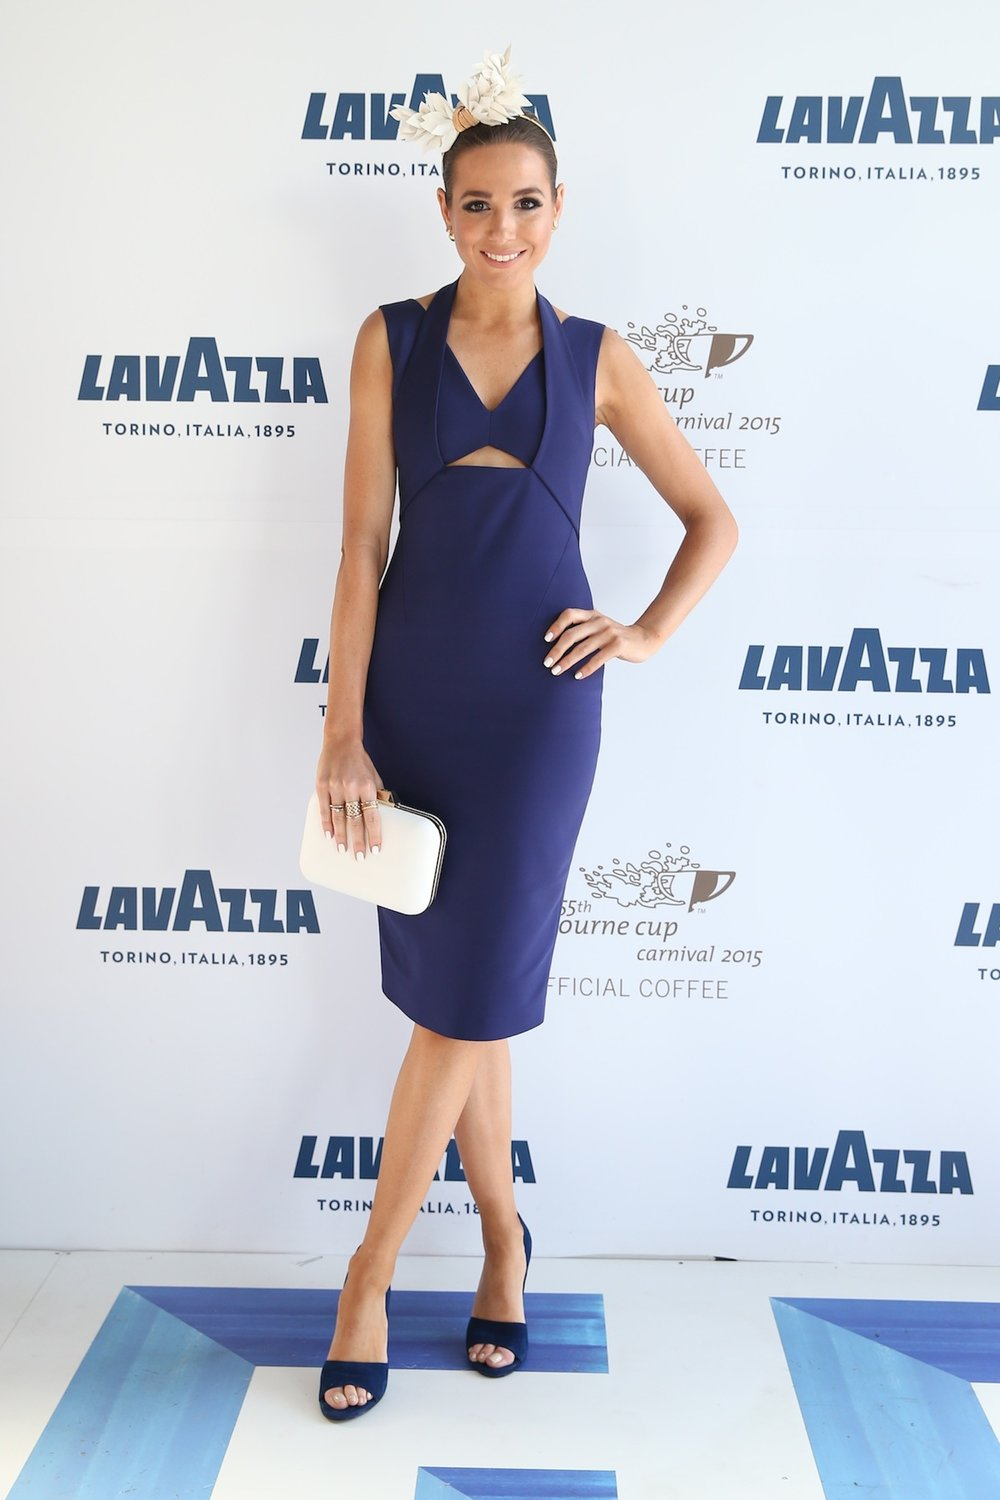 lavazza-mcc-2015-emma-nortarfrancesco.jpg